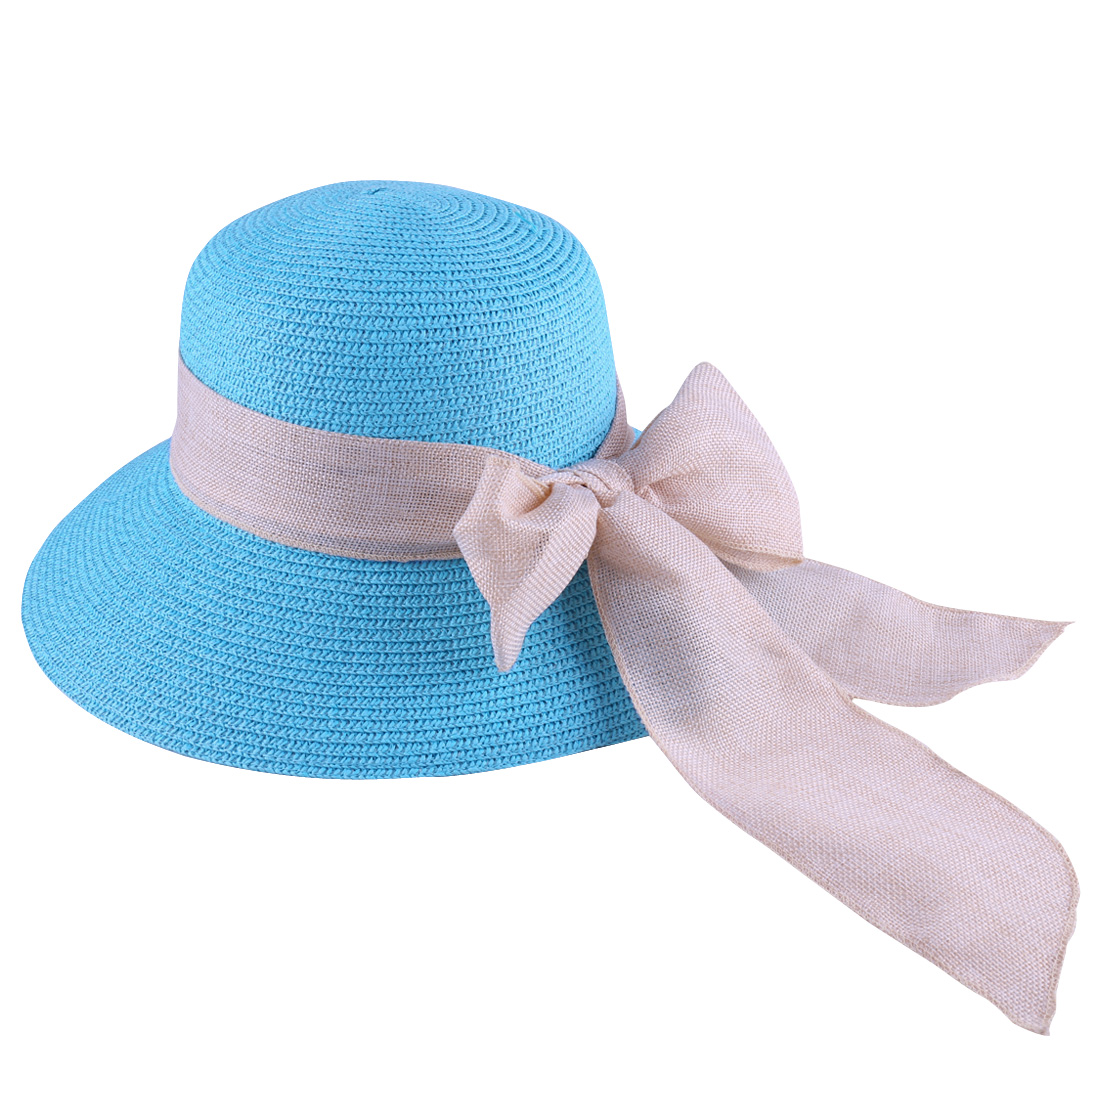 Woman Fashionable Sky Blue Self Tie Bow Decor Straw Woven Sun Hat